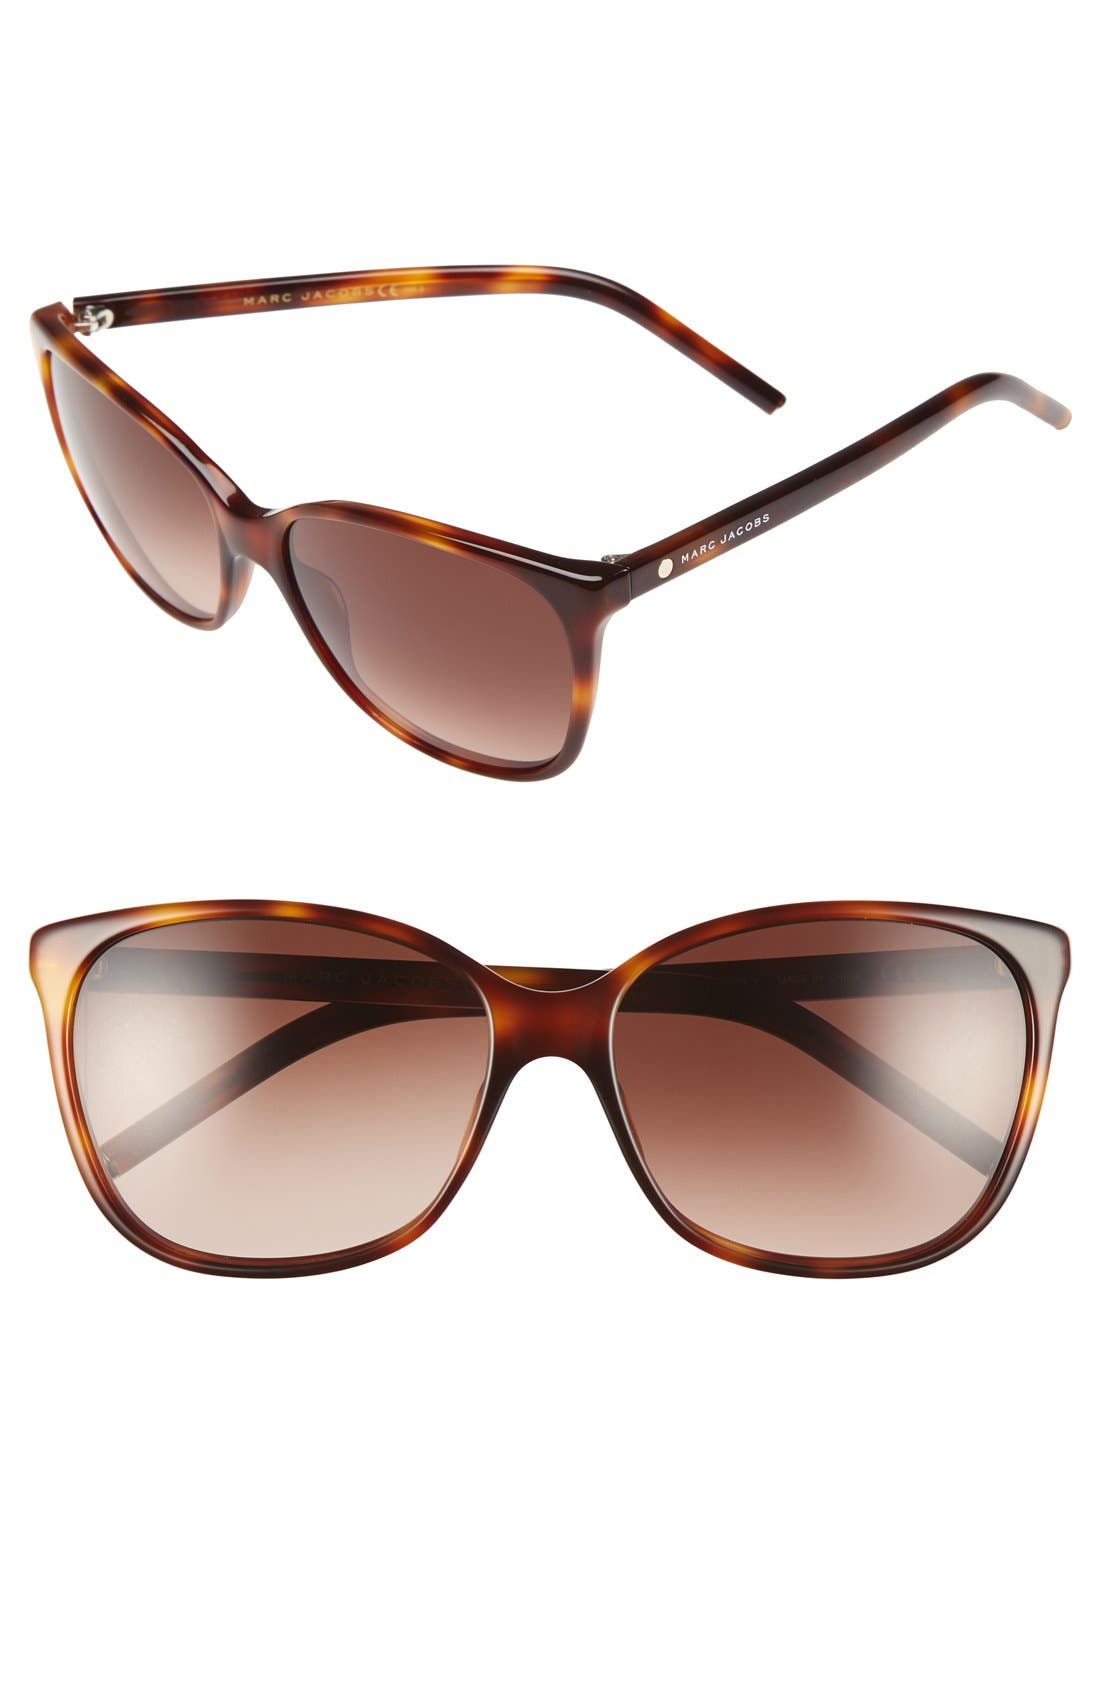 MARC JACOBS 57mm Oversized Sunglasses